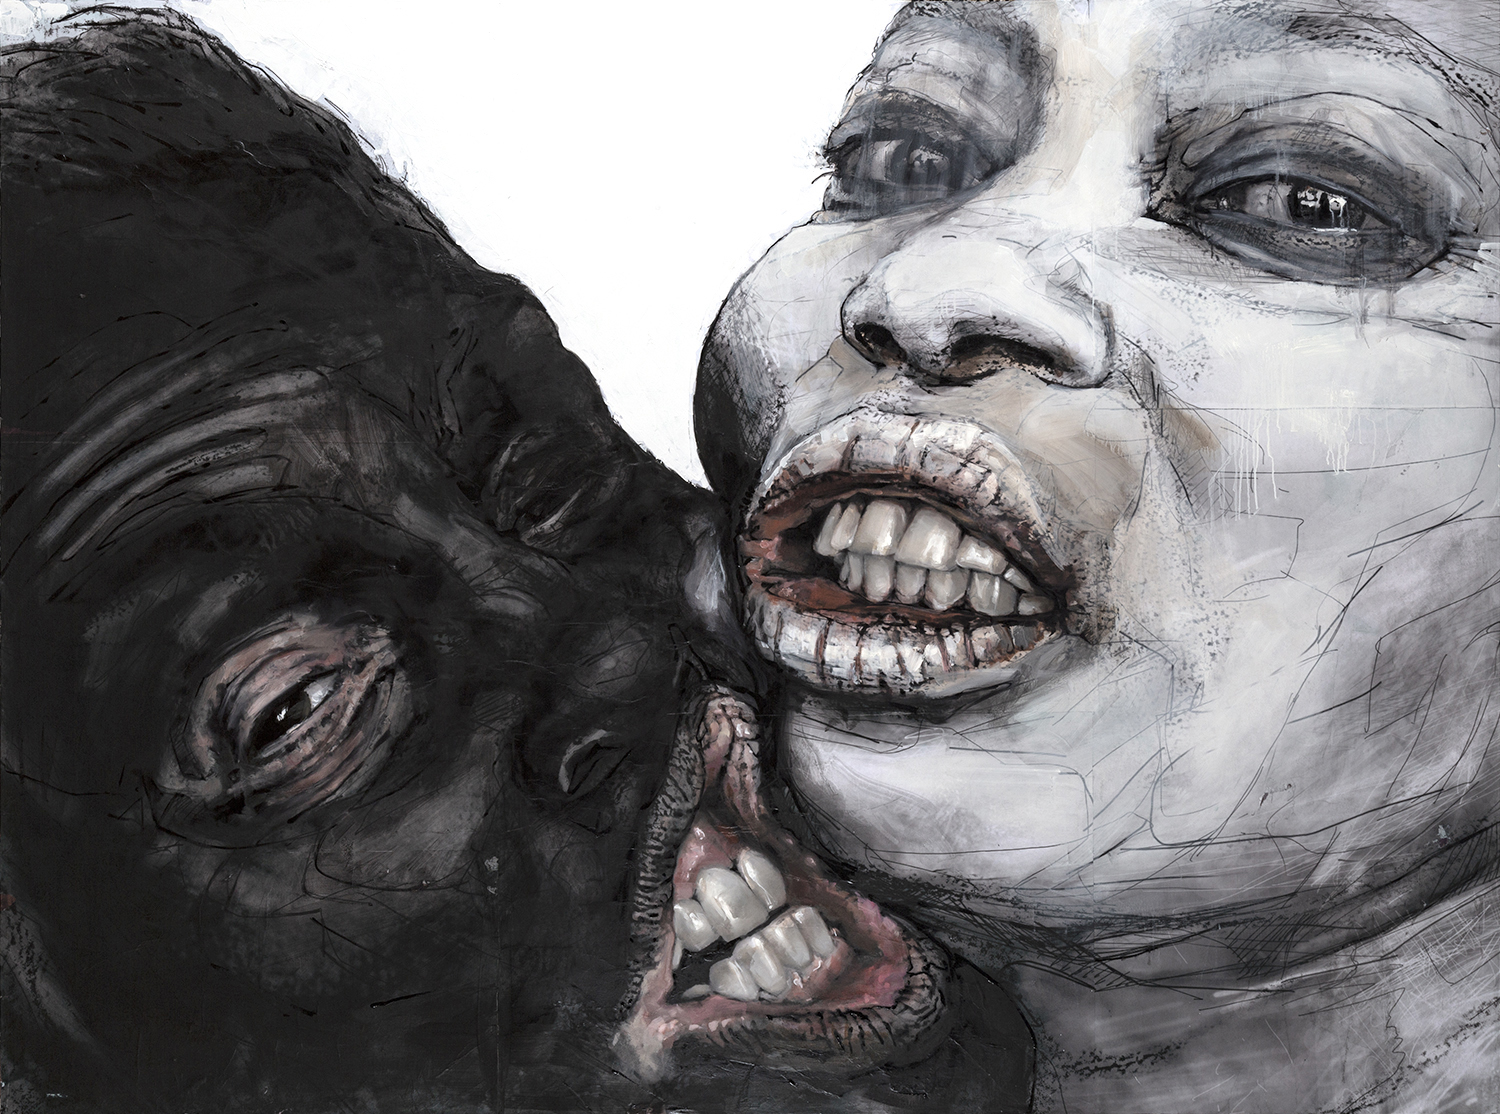 Implications of Baring One's Teeth, 60x80 inches